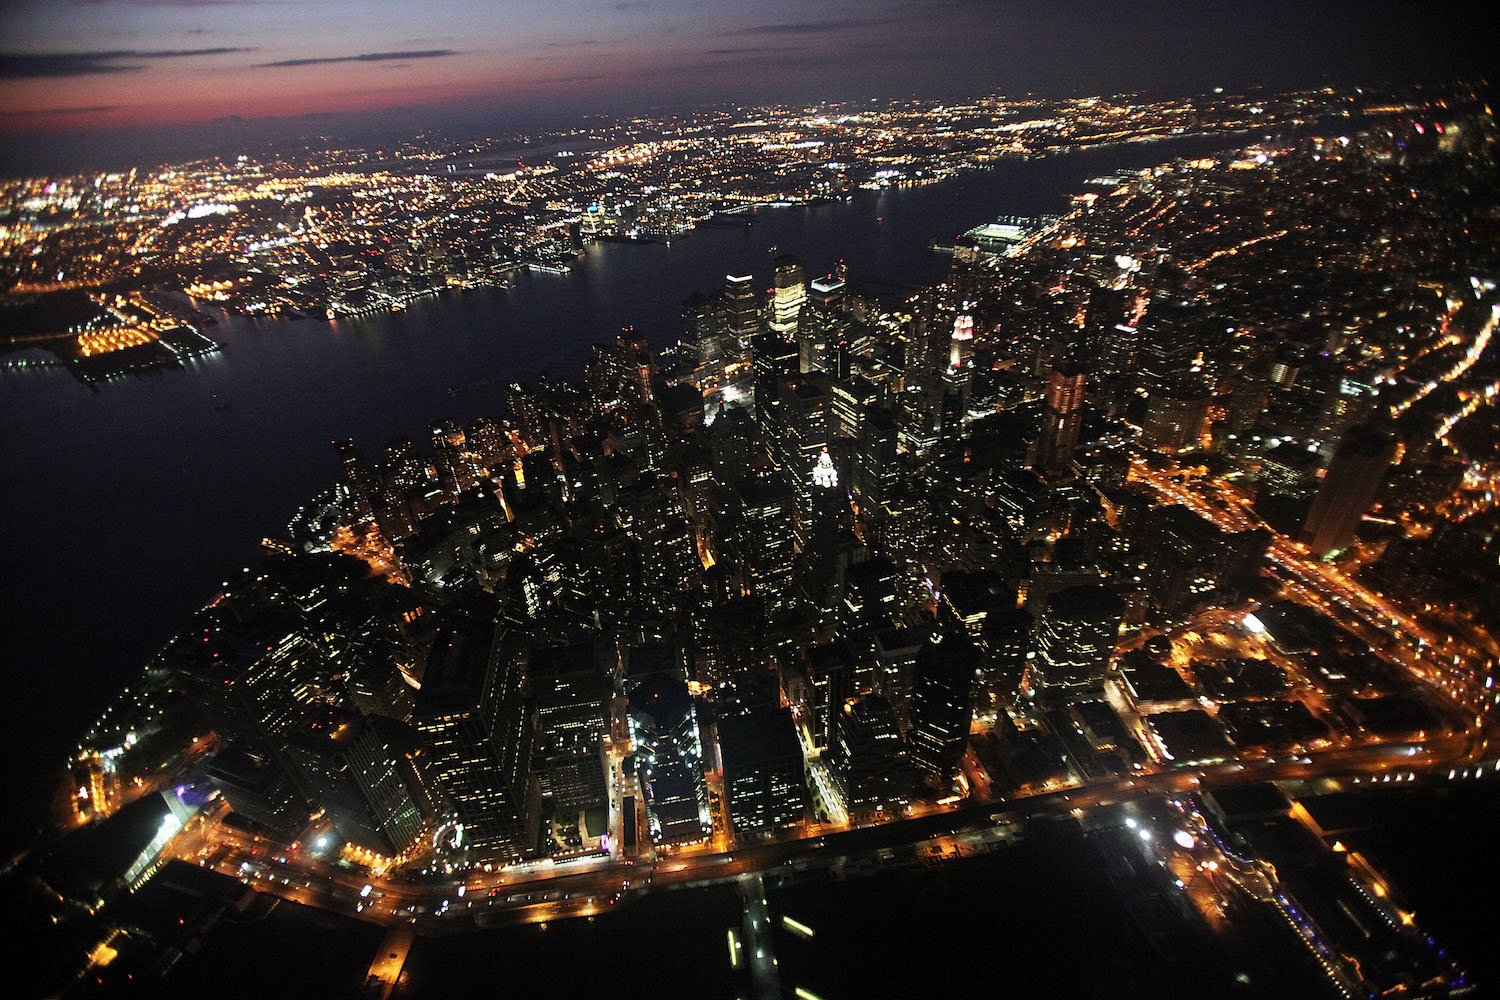 Aerial photo of New York City at night